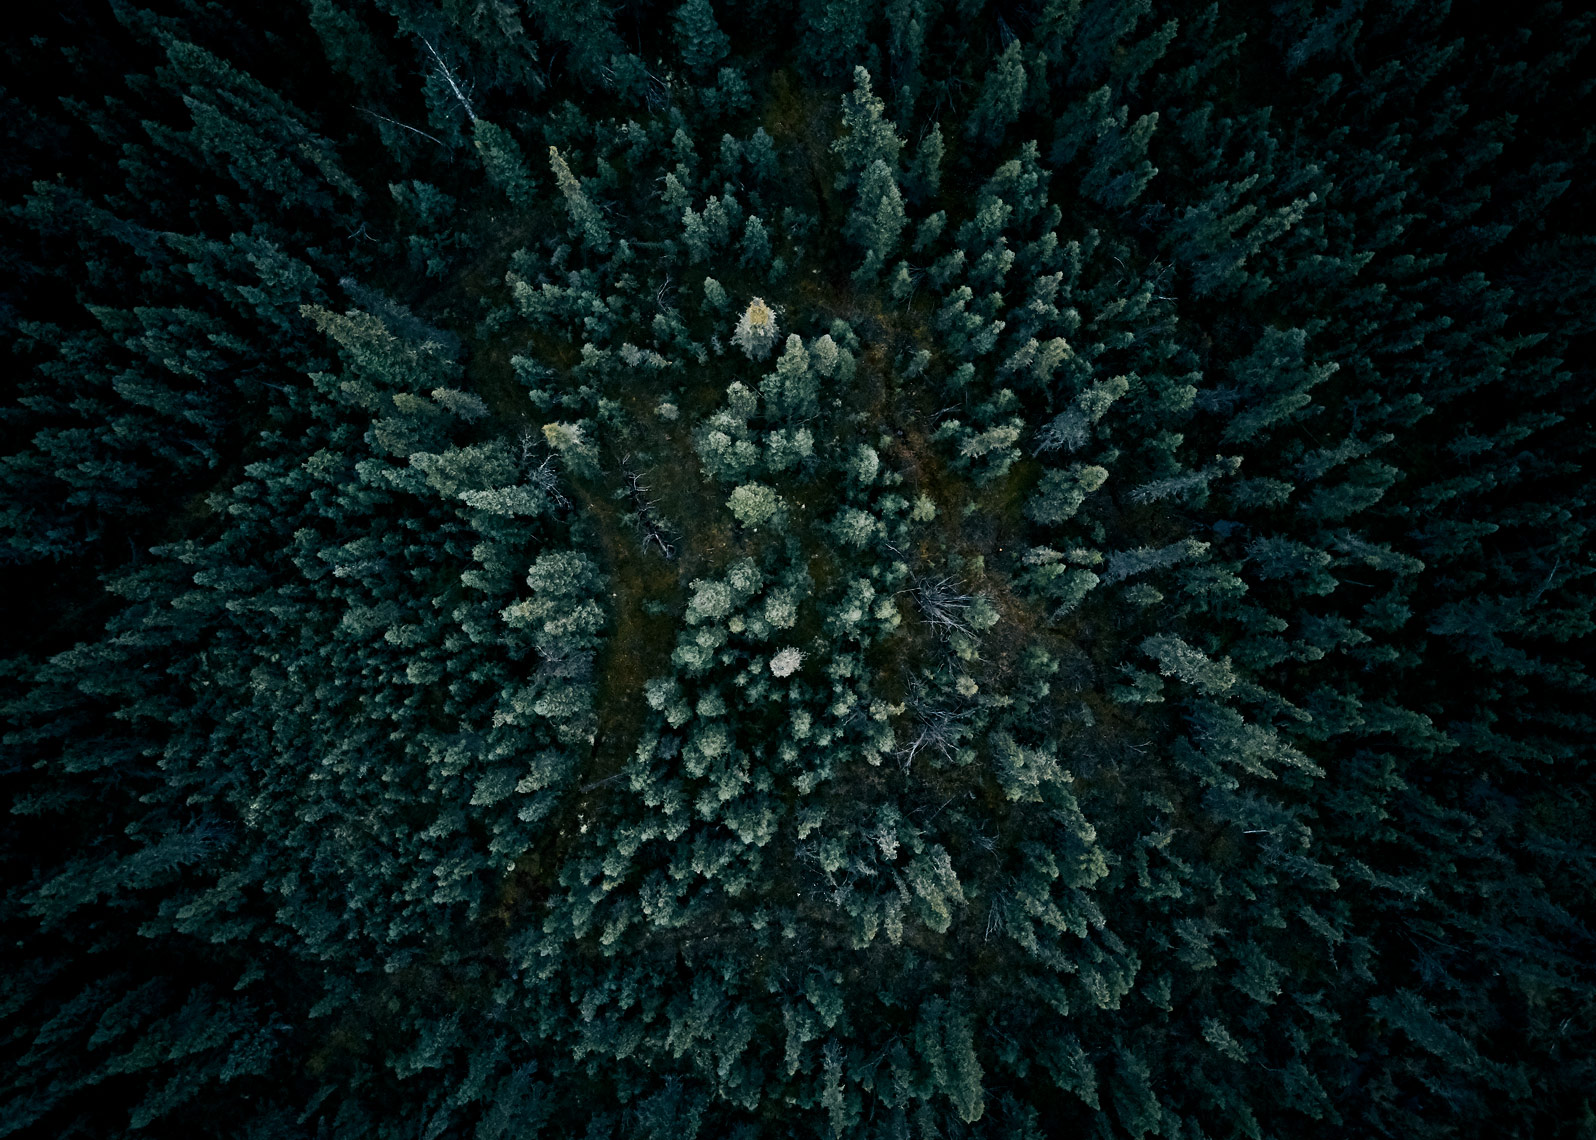 Forest scene captured from a drone